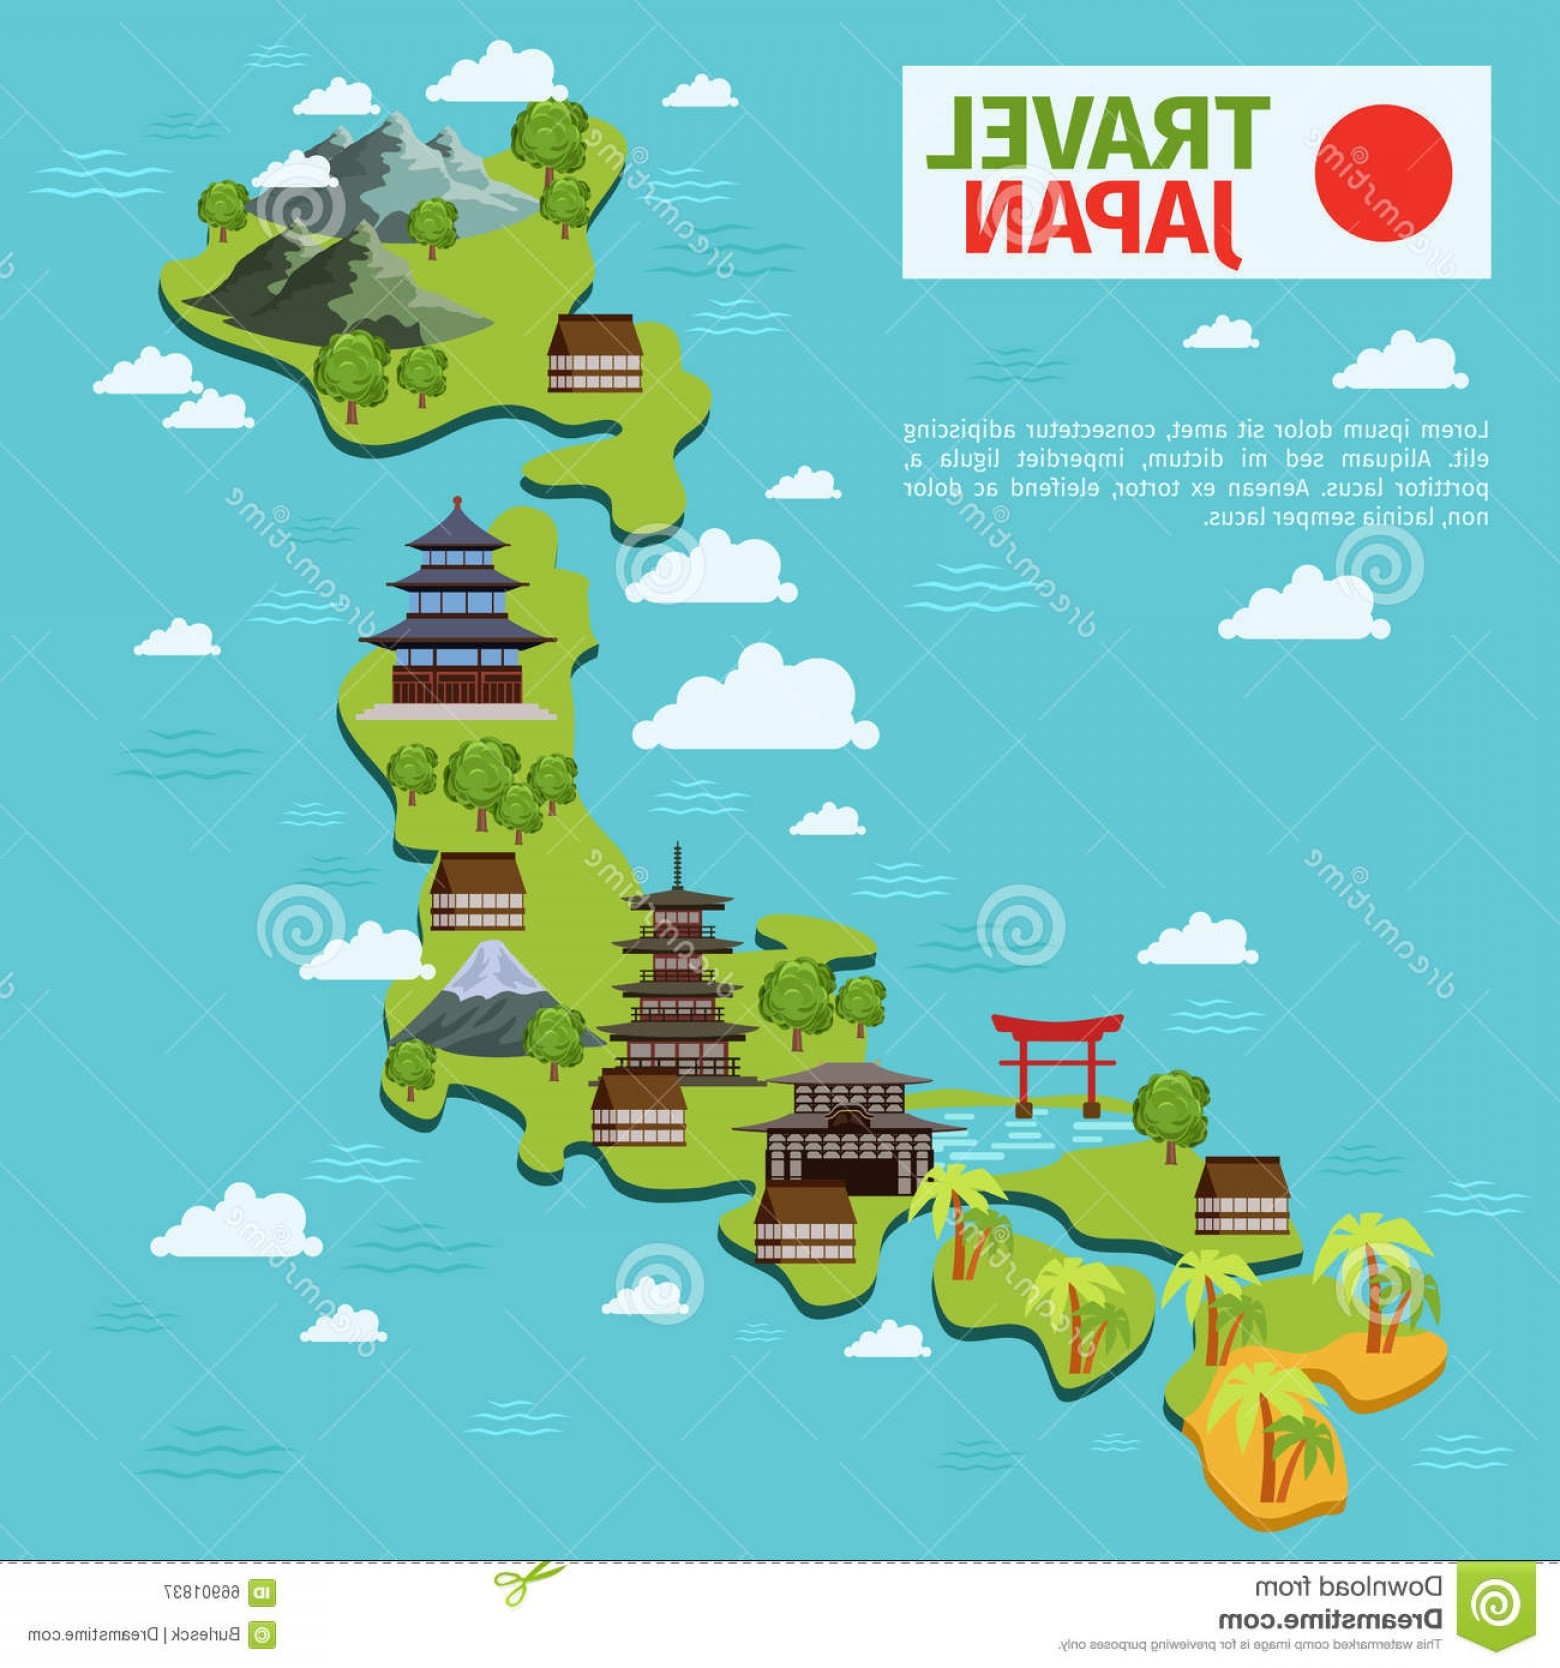 Japan Map Vector: Stock Illustration Japan Travel Vector Map Traditional Japanese Landmarks Culture Architecture Illustration Image